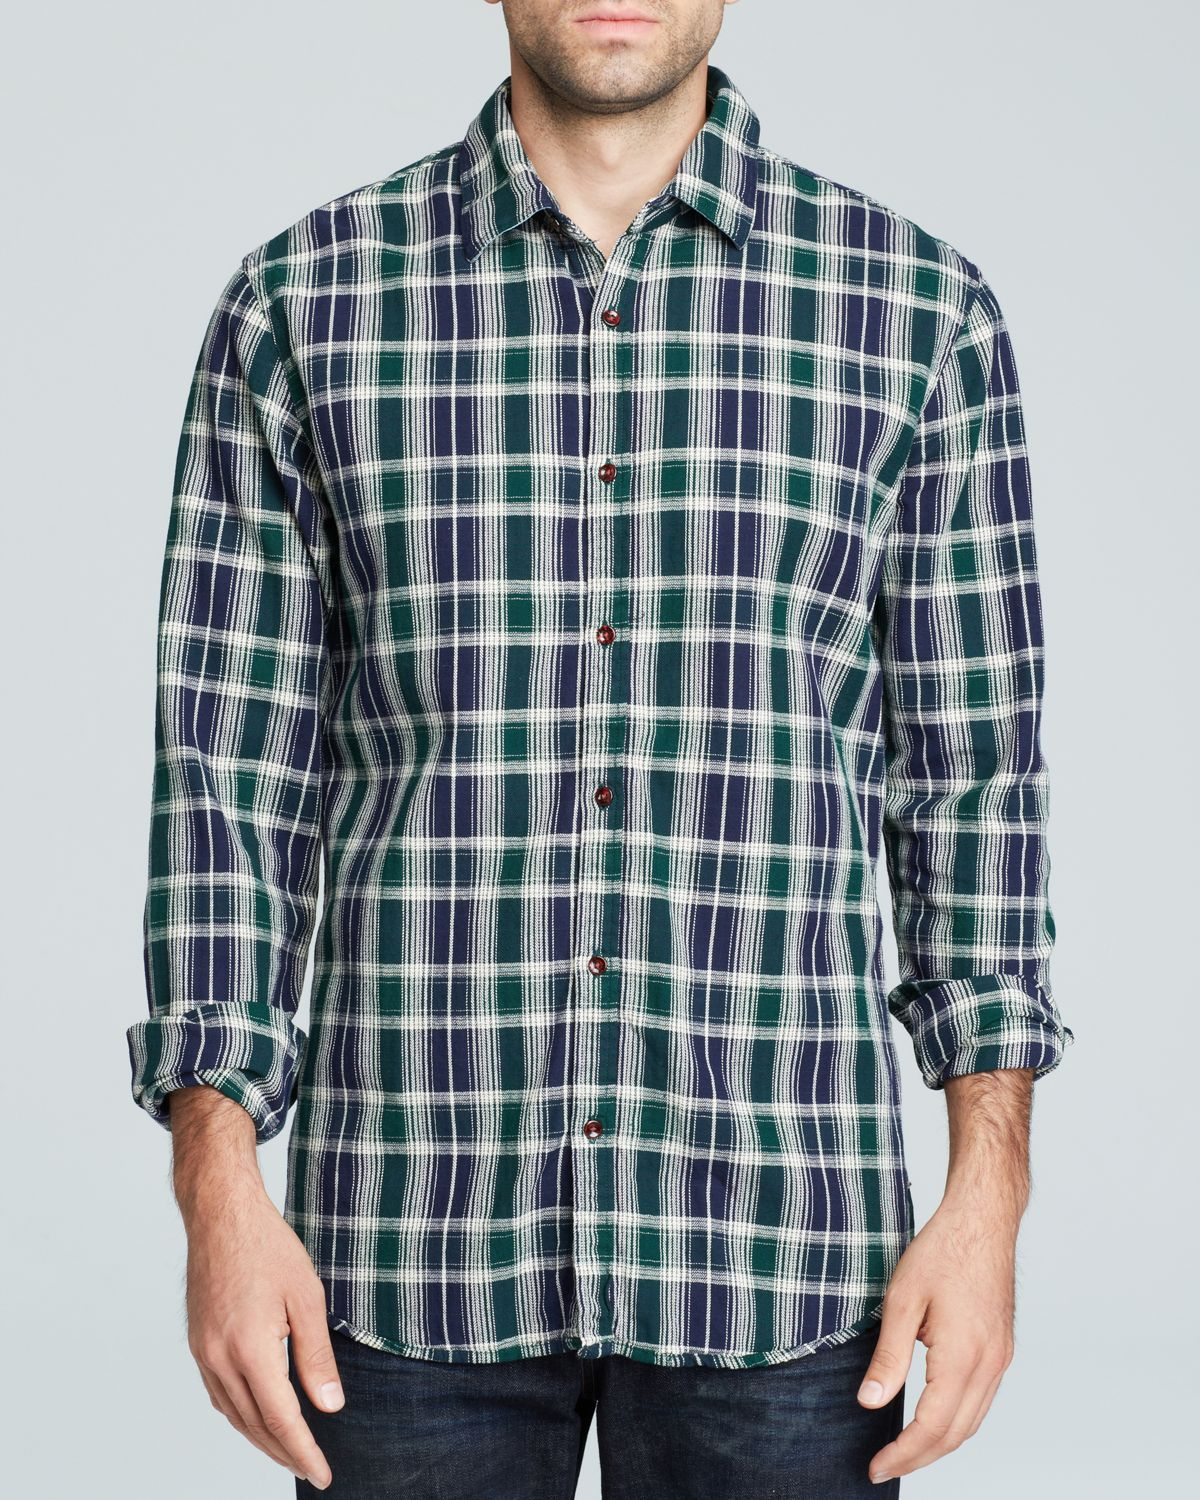 Scotch Soda Plaid Button Down Shirt Slim Fit In Green